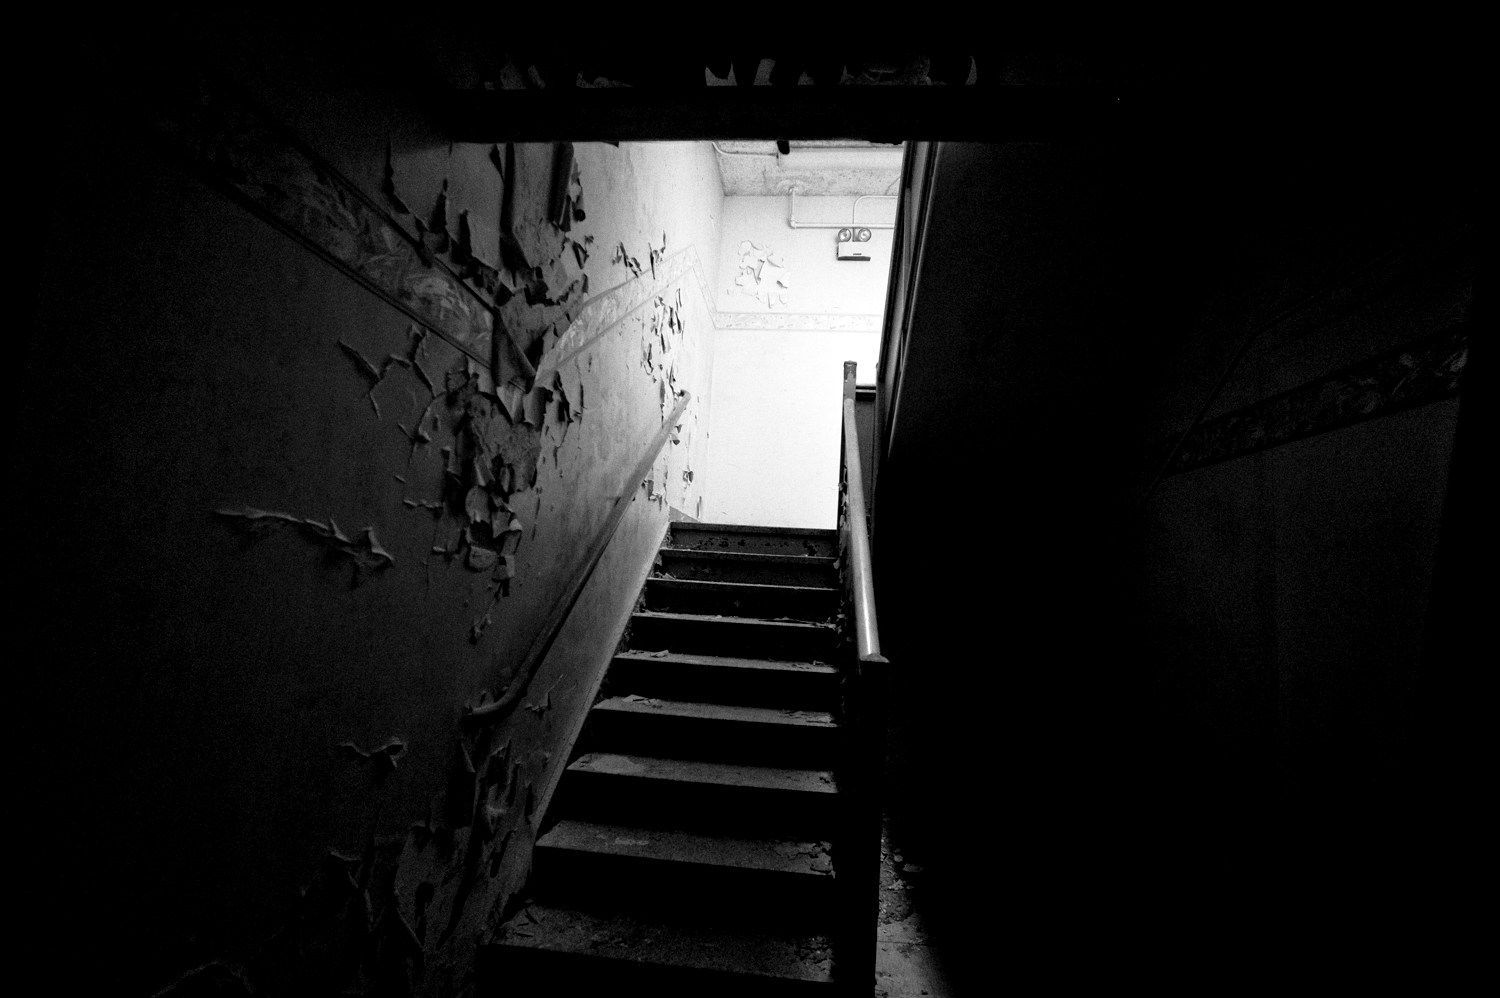 dark basement stairs. Dark Basement Stairs Find Safety in the Pinterest martinkeeis me  100 Images Lichterloh